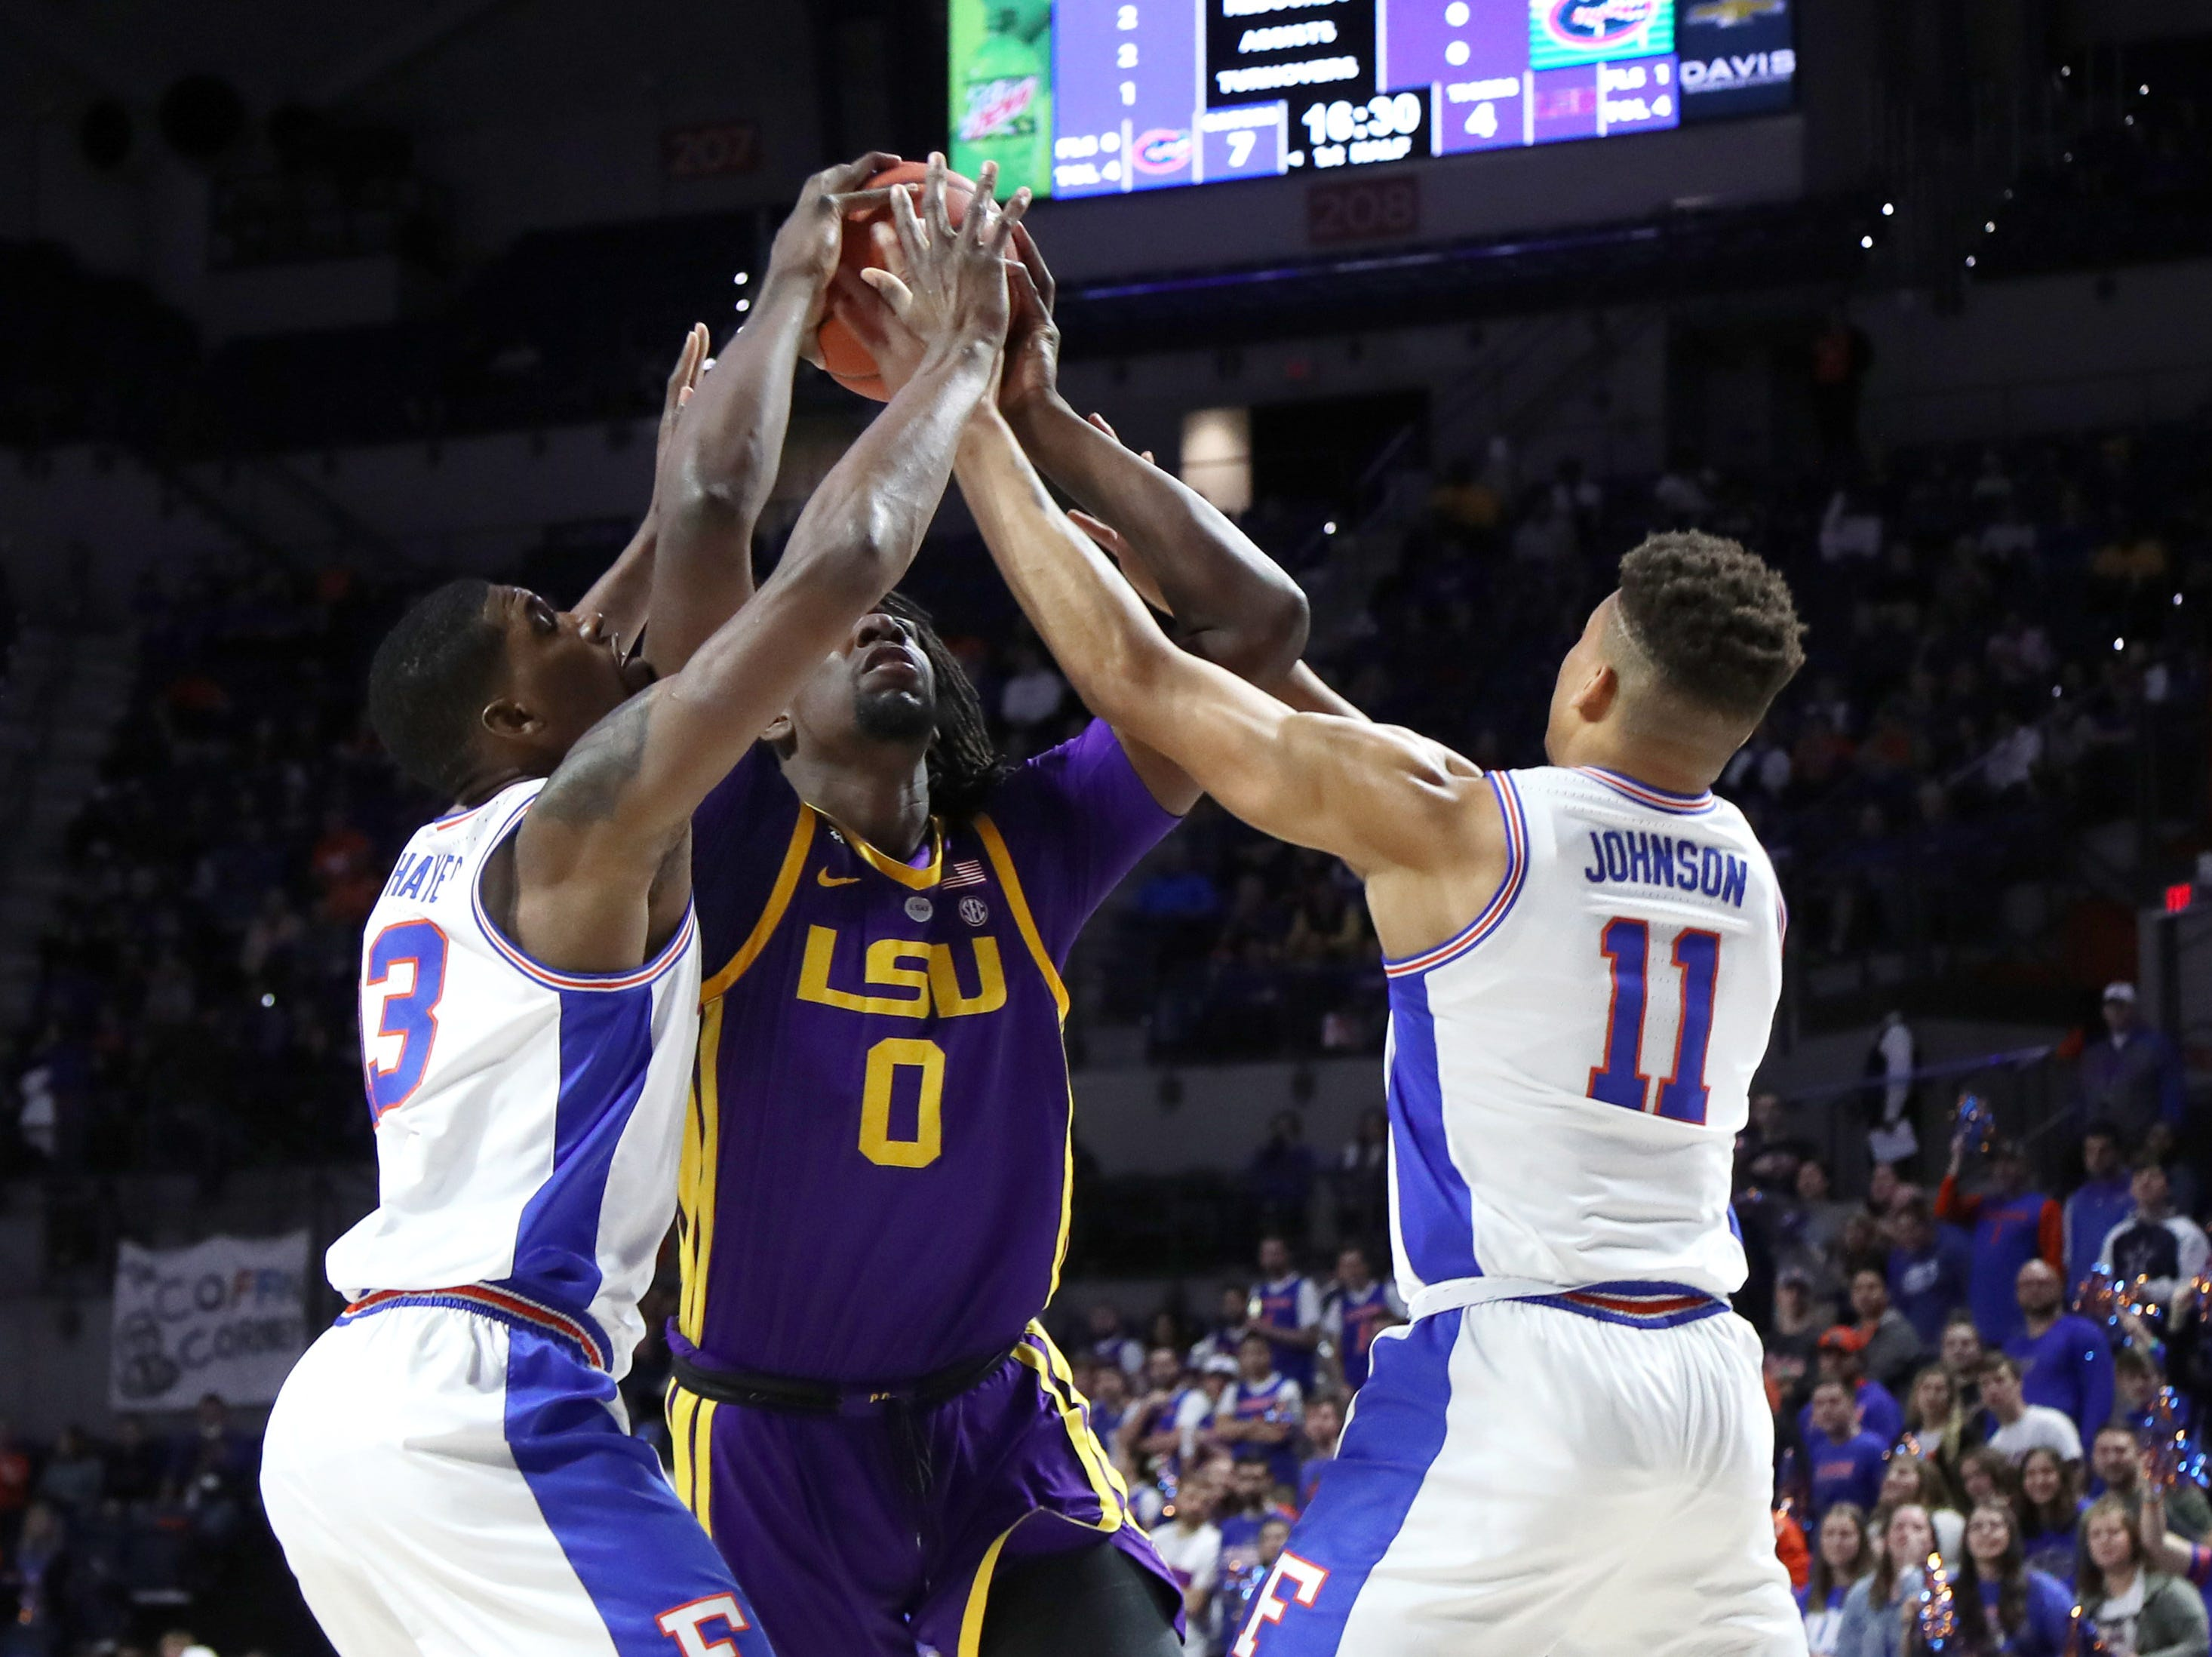 Mar 6, 2019; Gainesville, FL, USA; Florida Gators guard Jalen Hudson (3) and forward Keyontae Johnson (11) double team LSU Tigers forward Naz Reid (0) during the first half at Exactech Arena. Mandatory Credit: Kim Klement-USA TODAY Sports